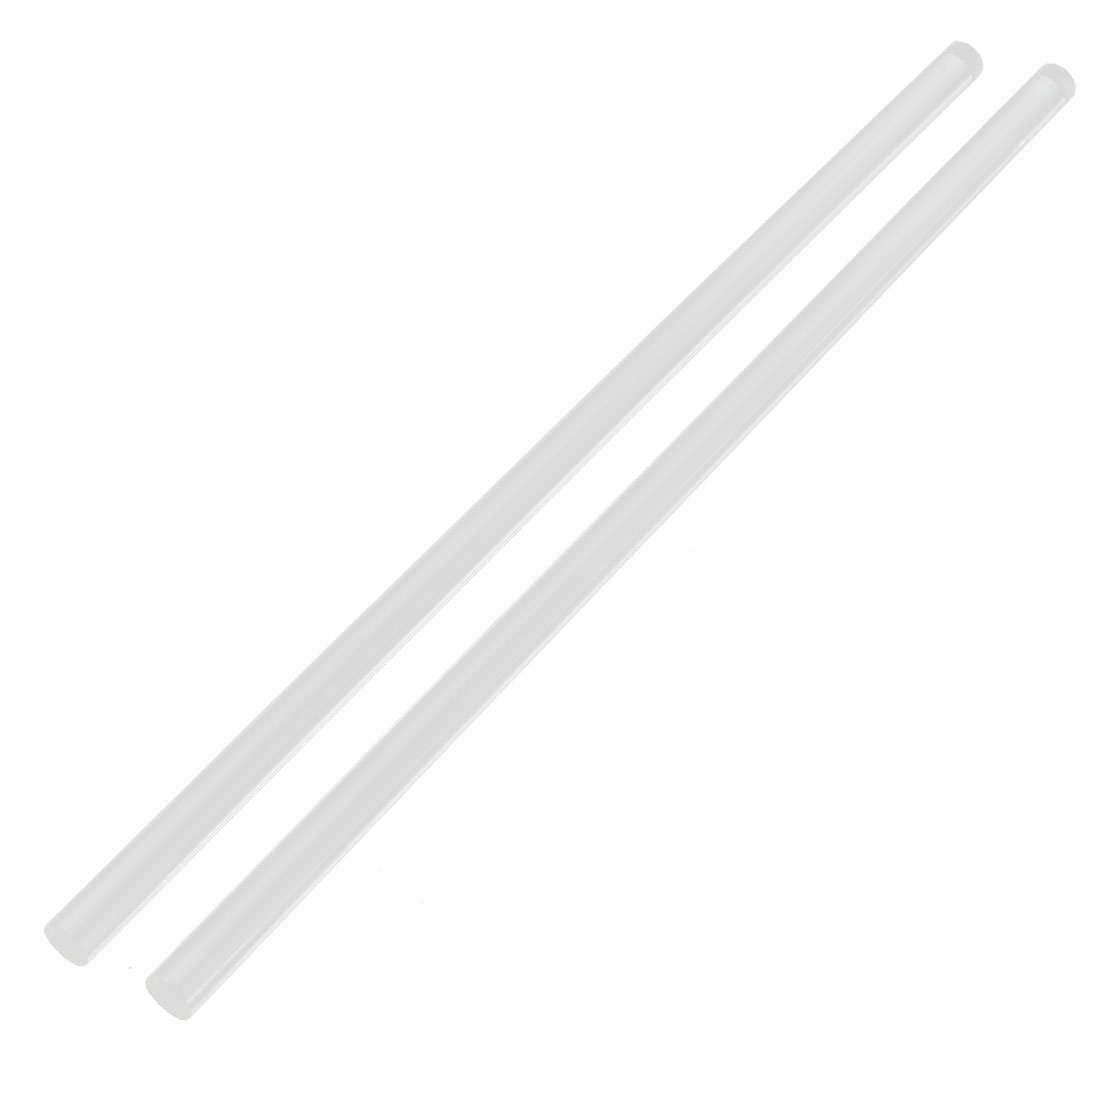 LIXF HOT 2Pcs 10mm Clear Round Perspex Acrylic Bar PMMA Extruded Rod 12